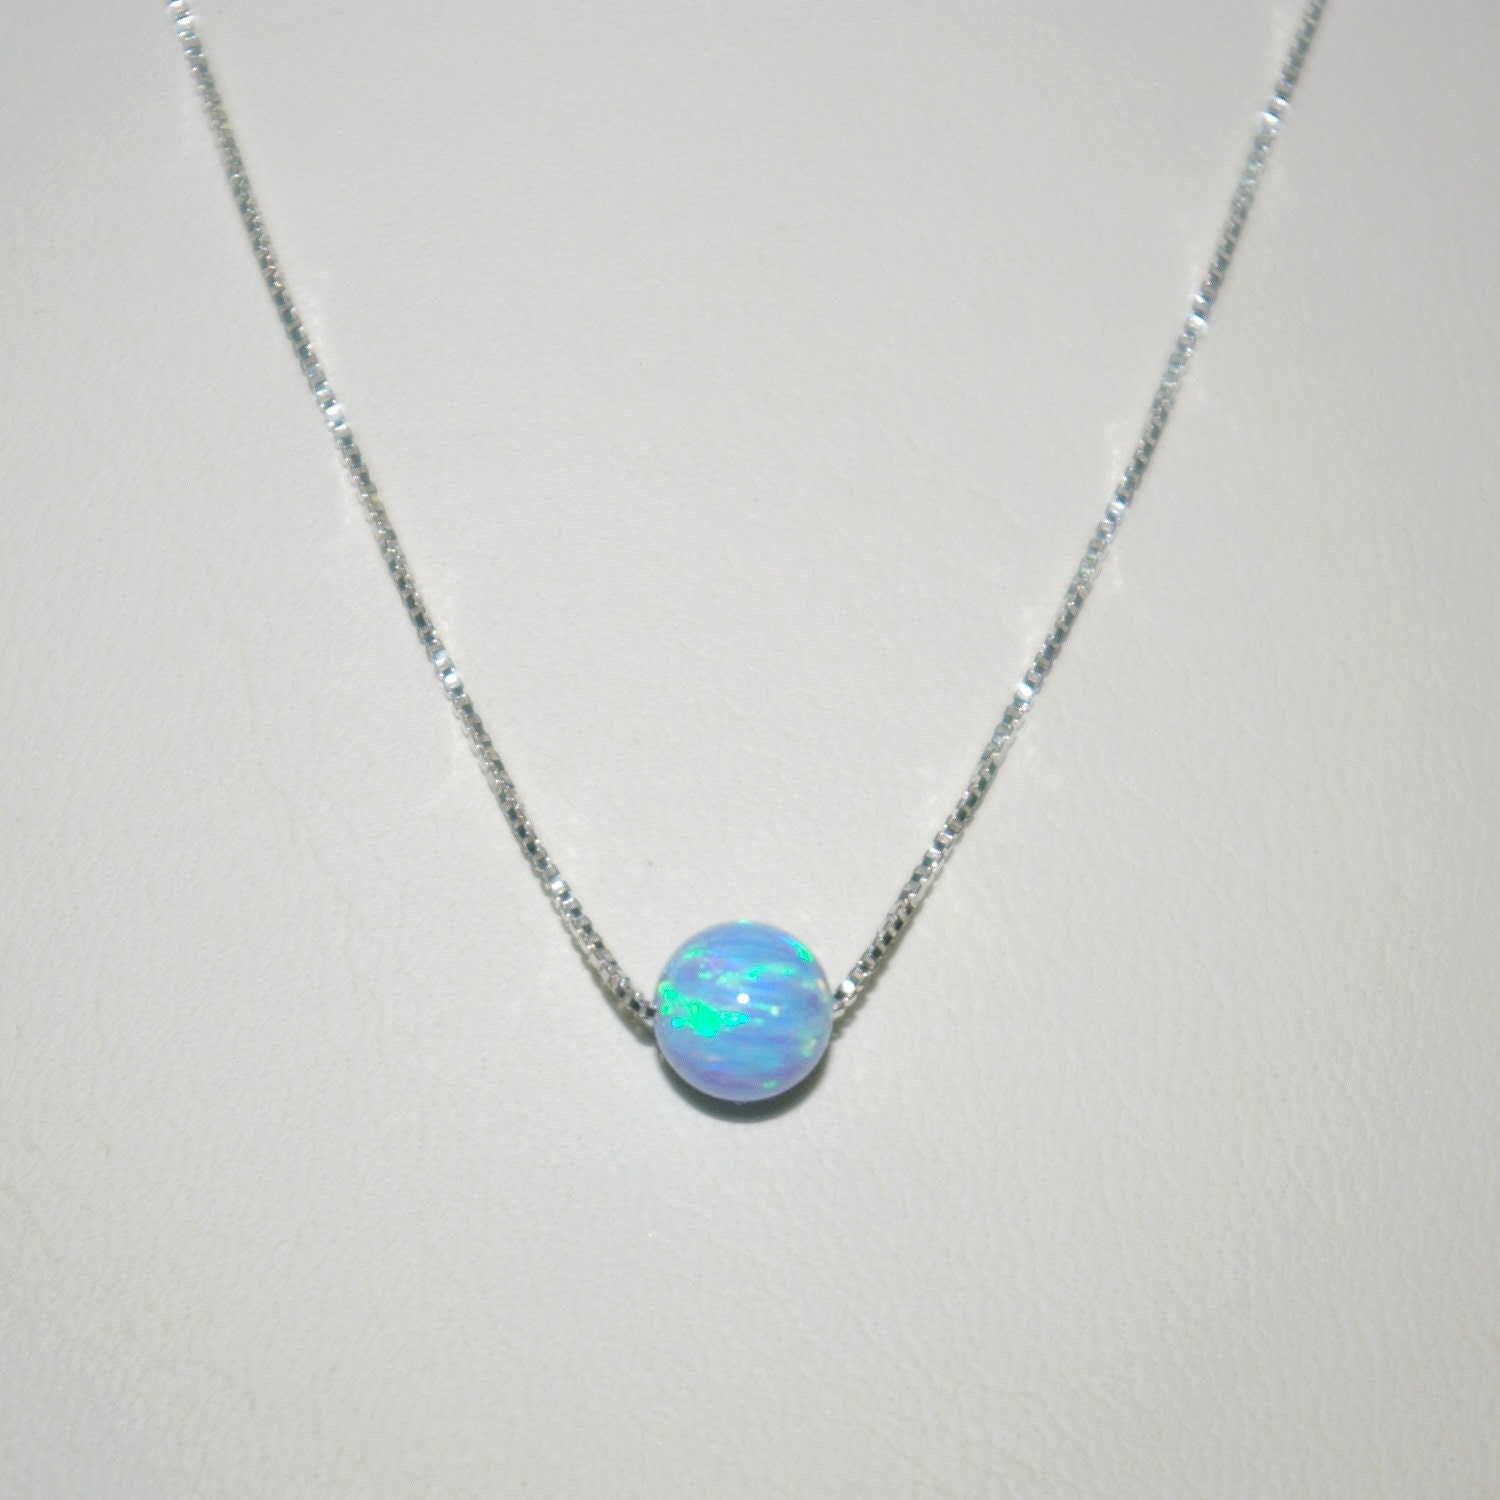 pugliese designers opal august oval horizontal necklace small real pendant shop crystal rosanne jewelry front